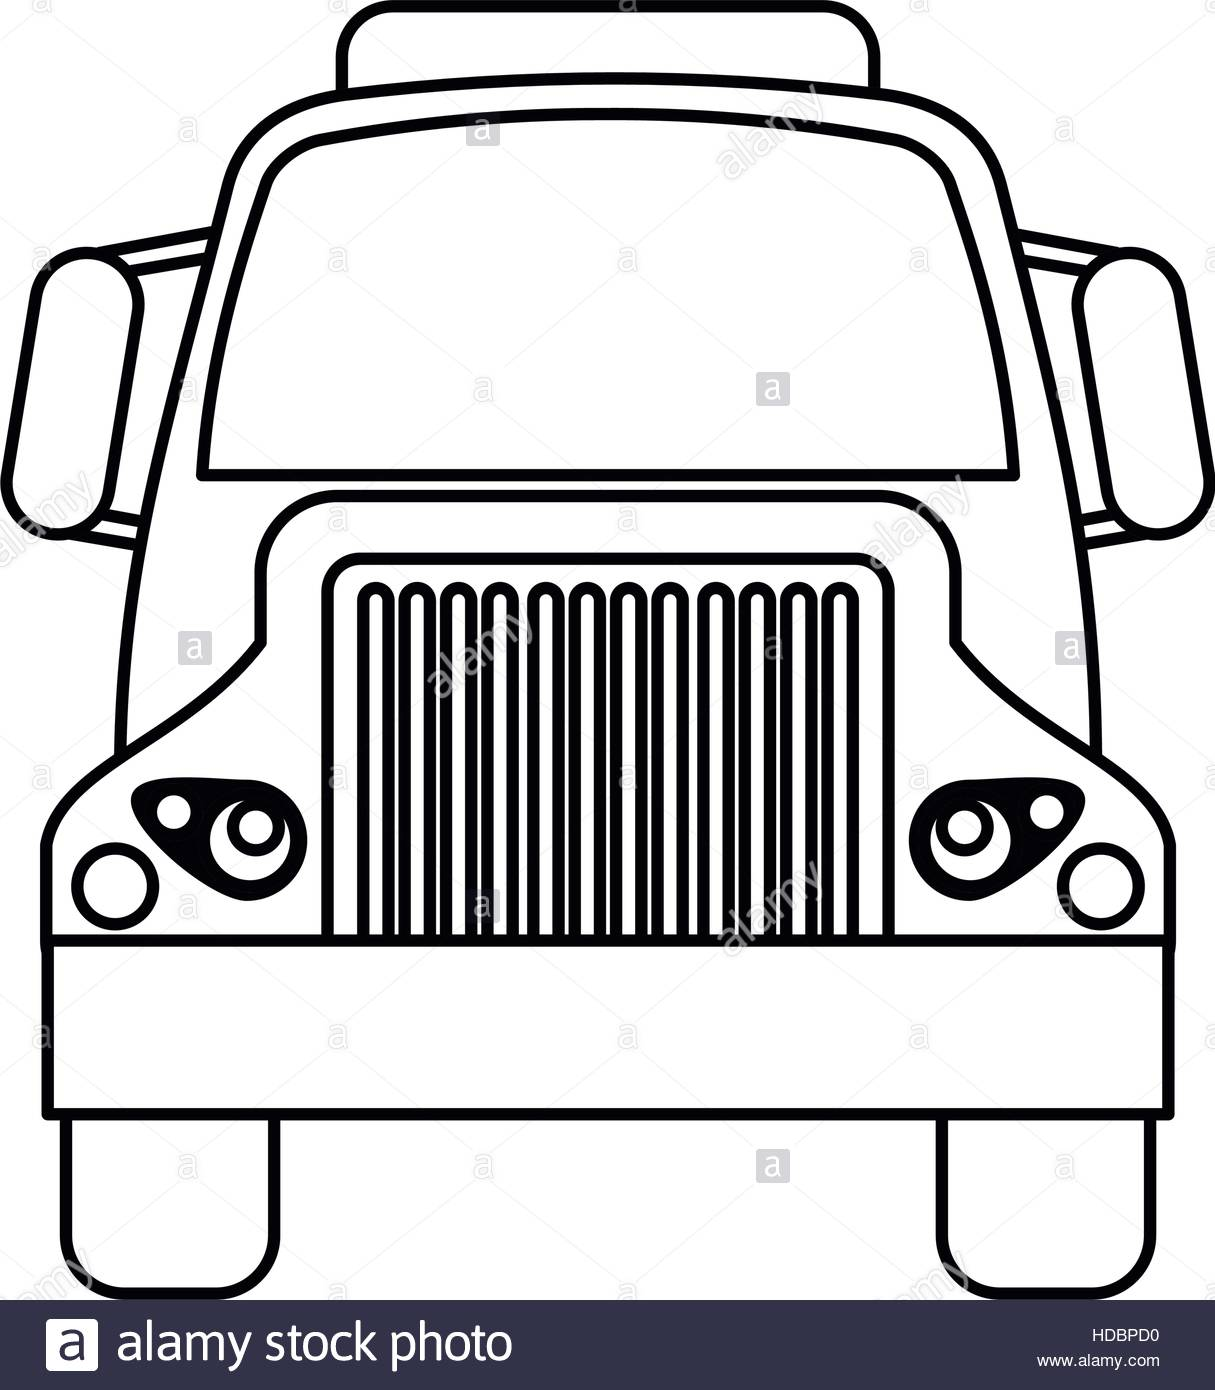 1215x1390 Front Truck Transportation Commercial Vehicle Outline Stock Vector